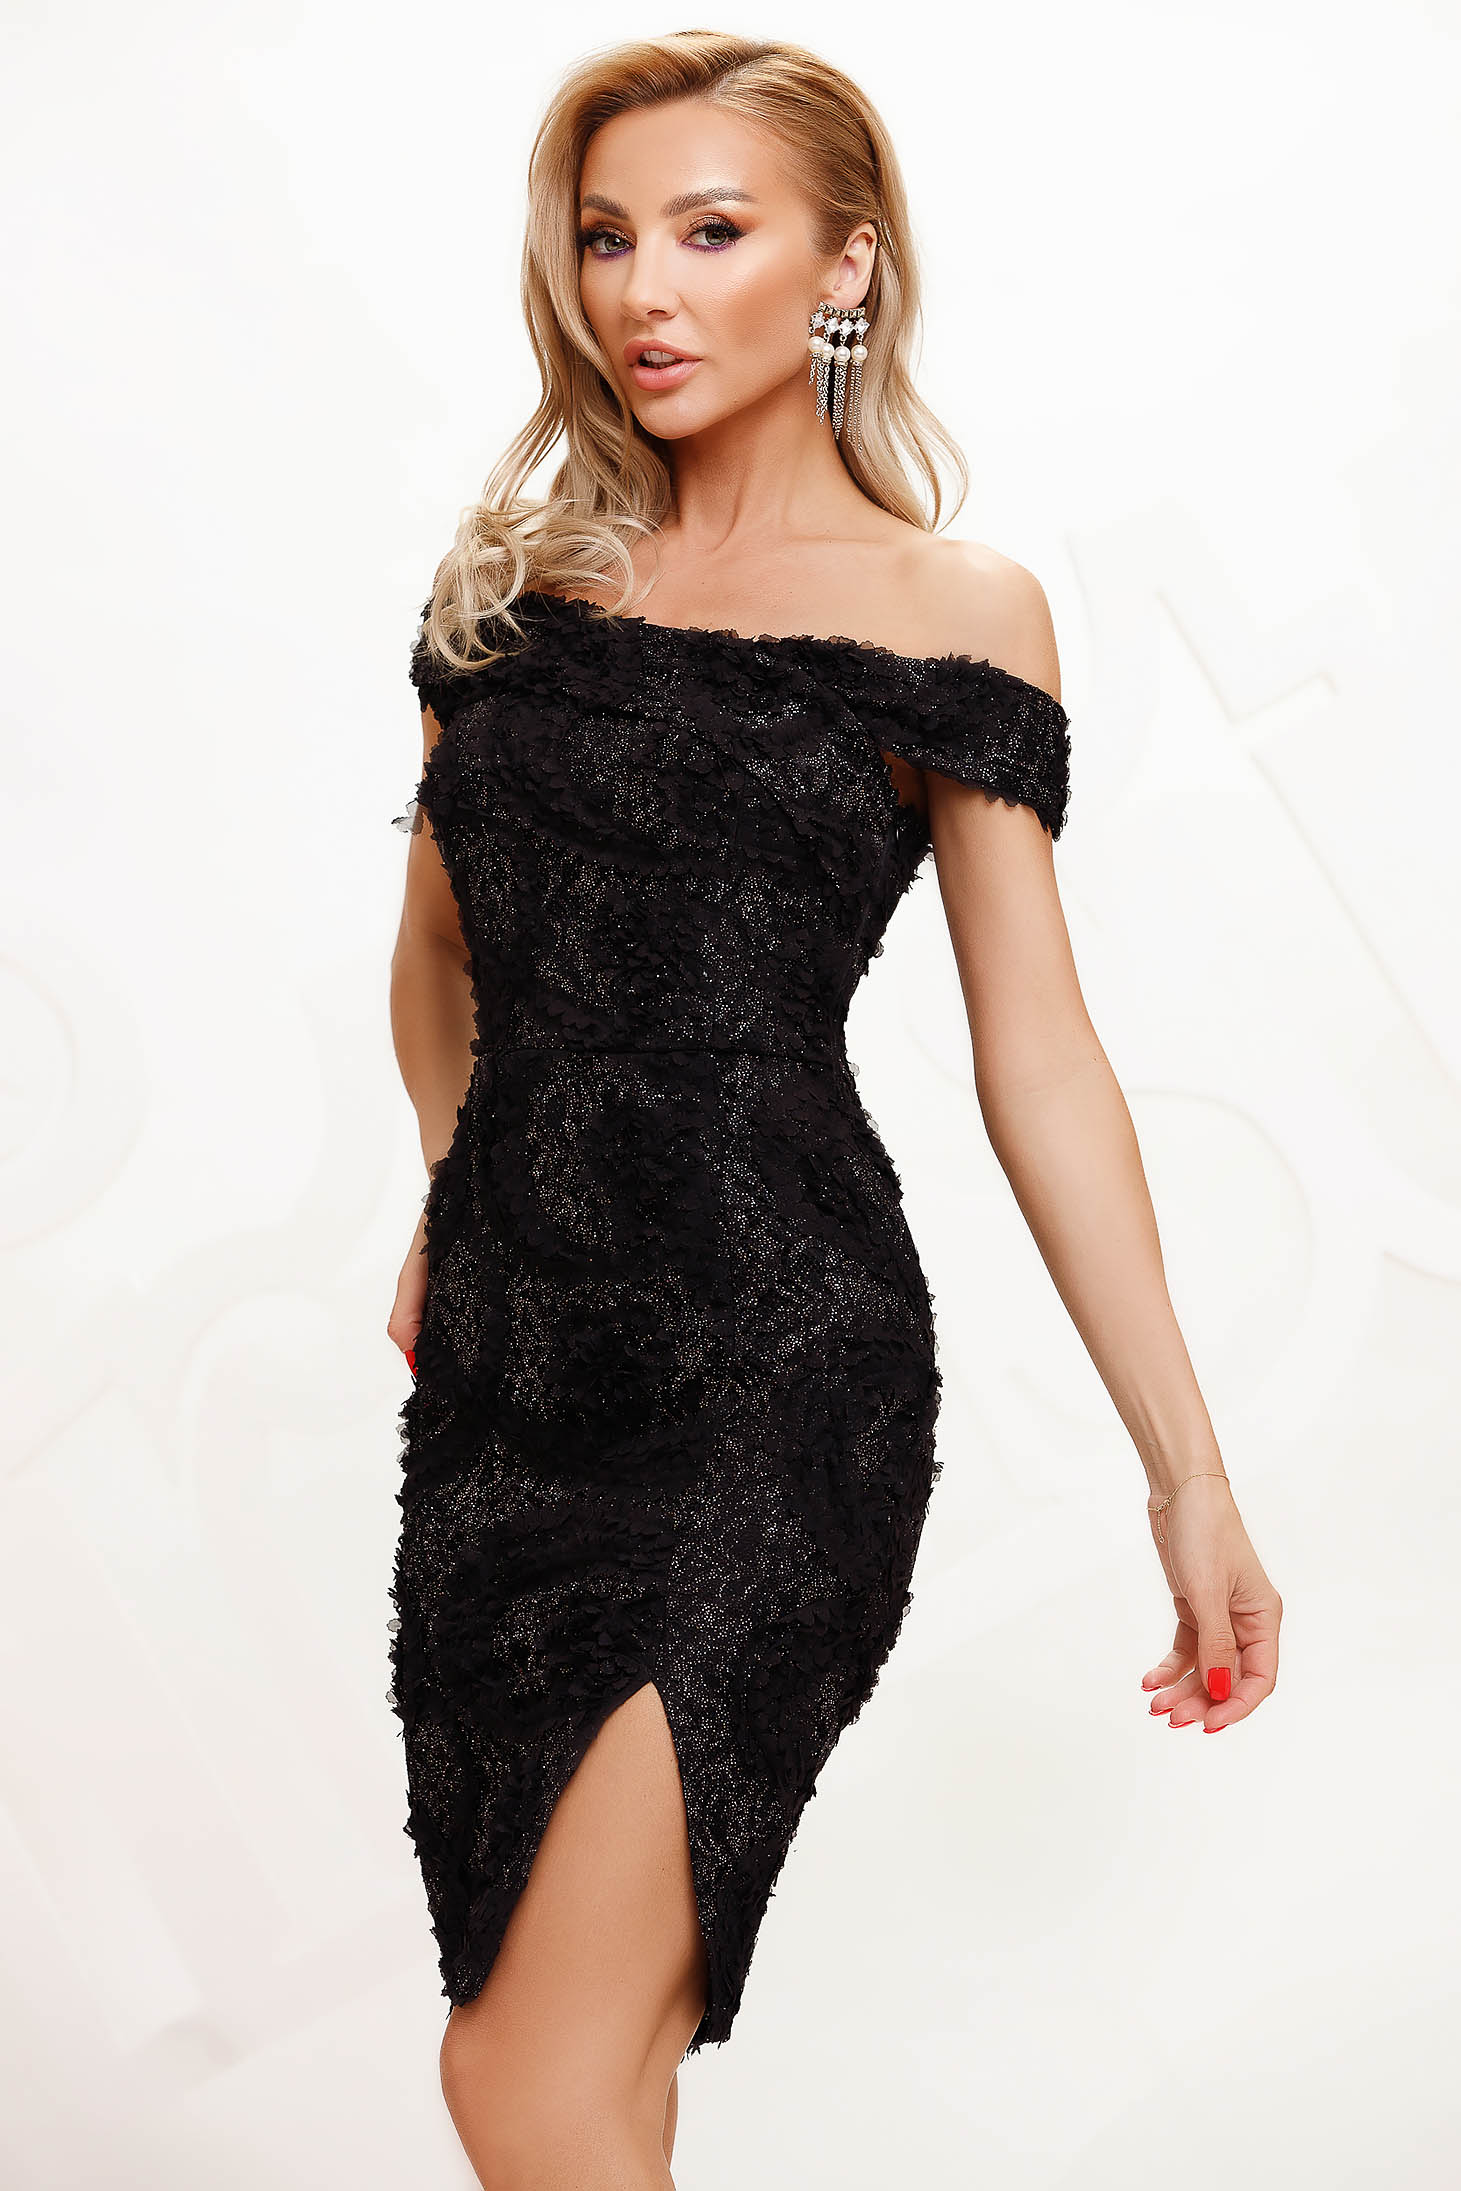 Black dress from laced fabric occasional pencil short cut naked shoulders